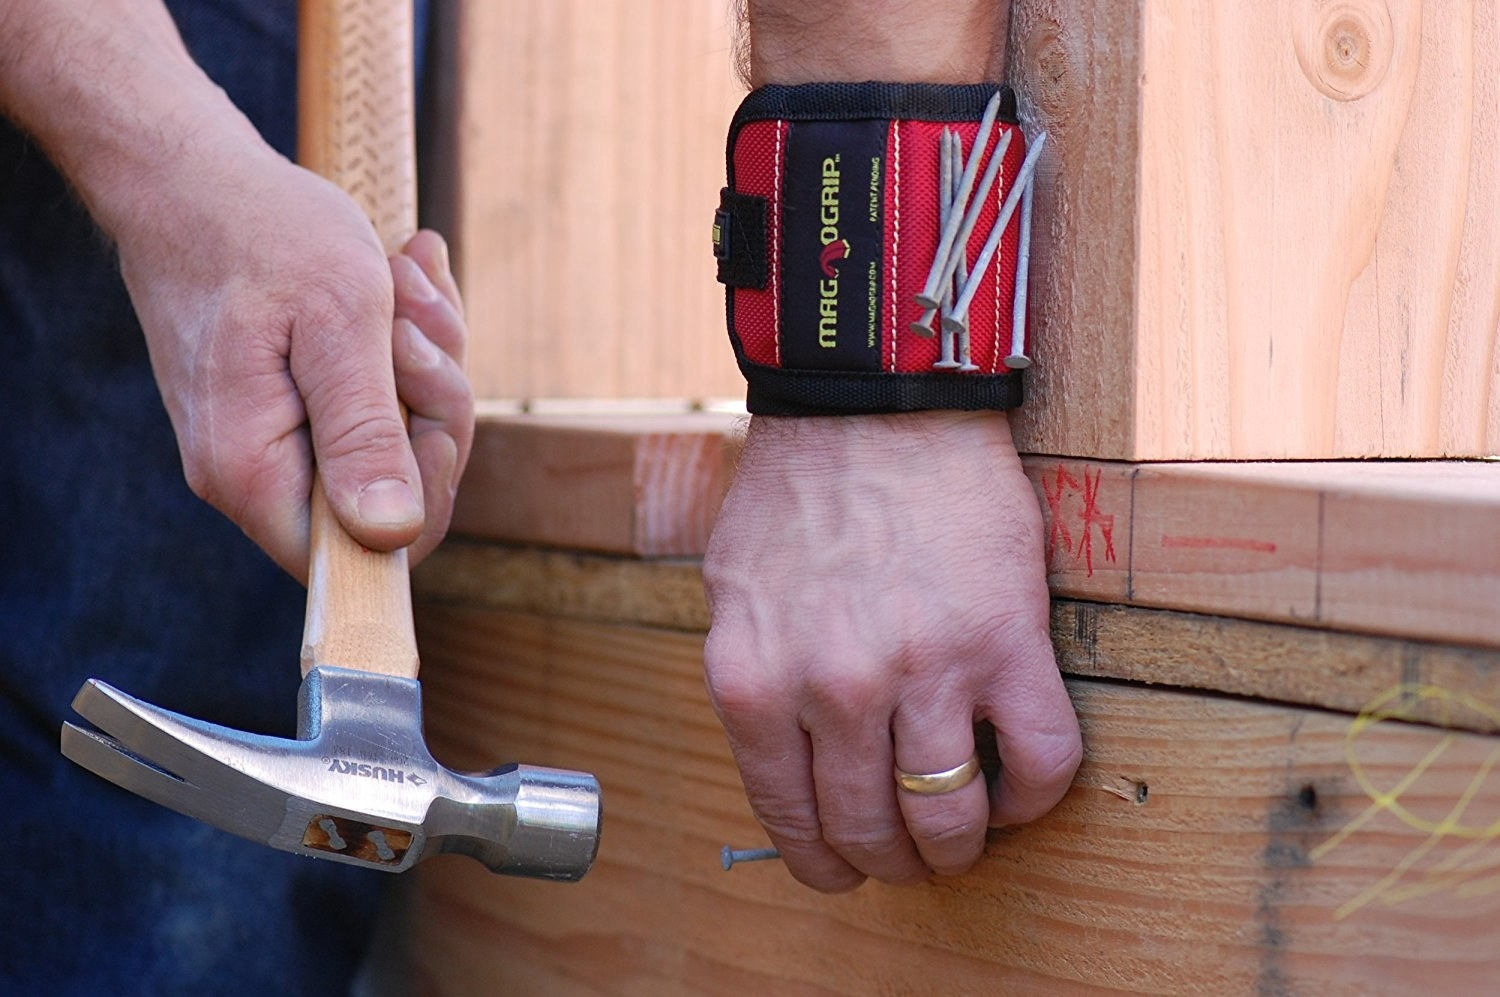 model wearing red wristband with nails stuck to it while they hammer one into wood